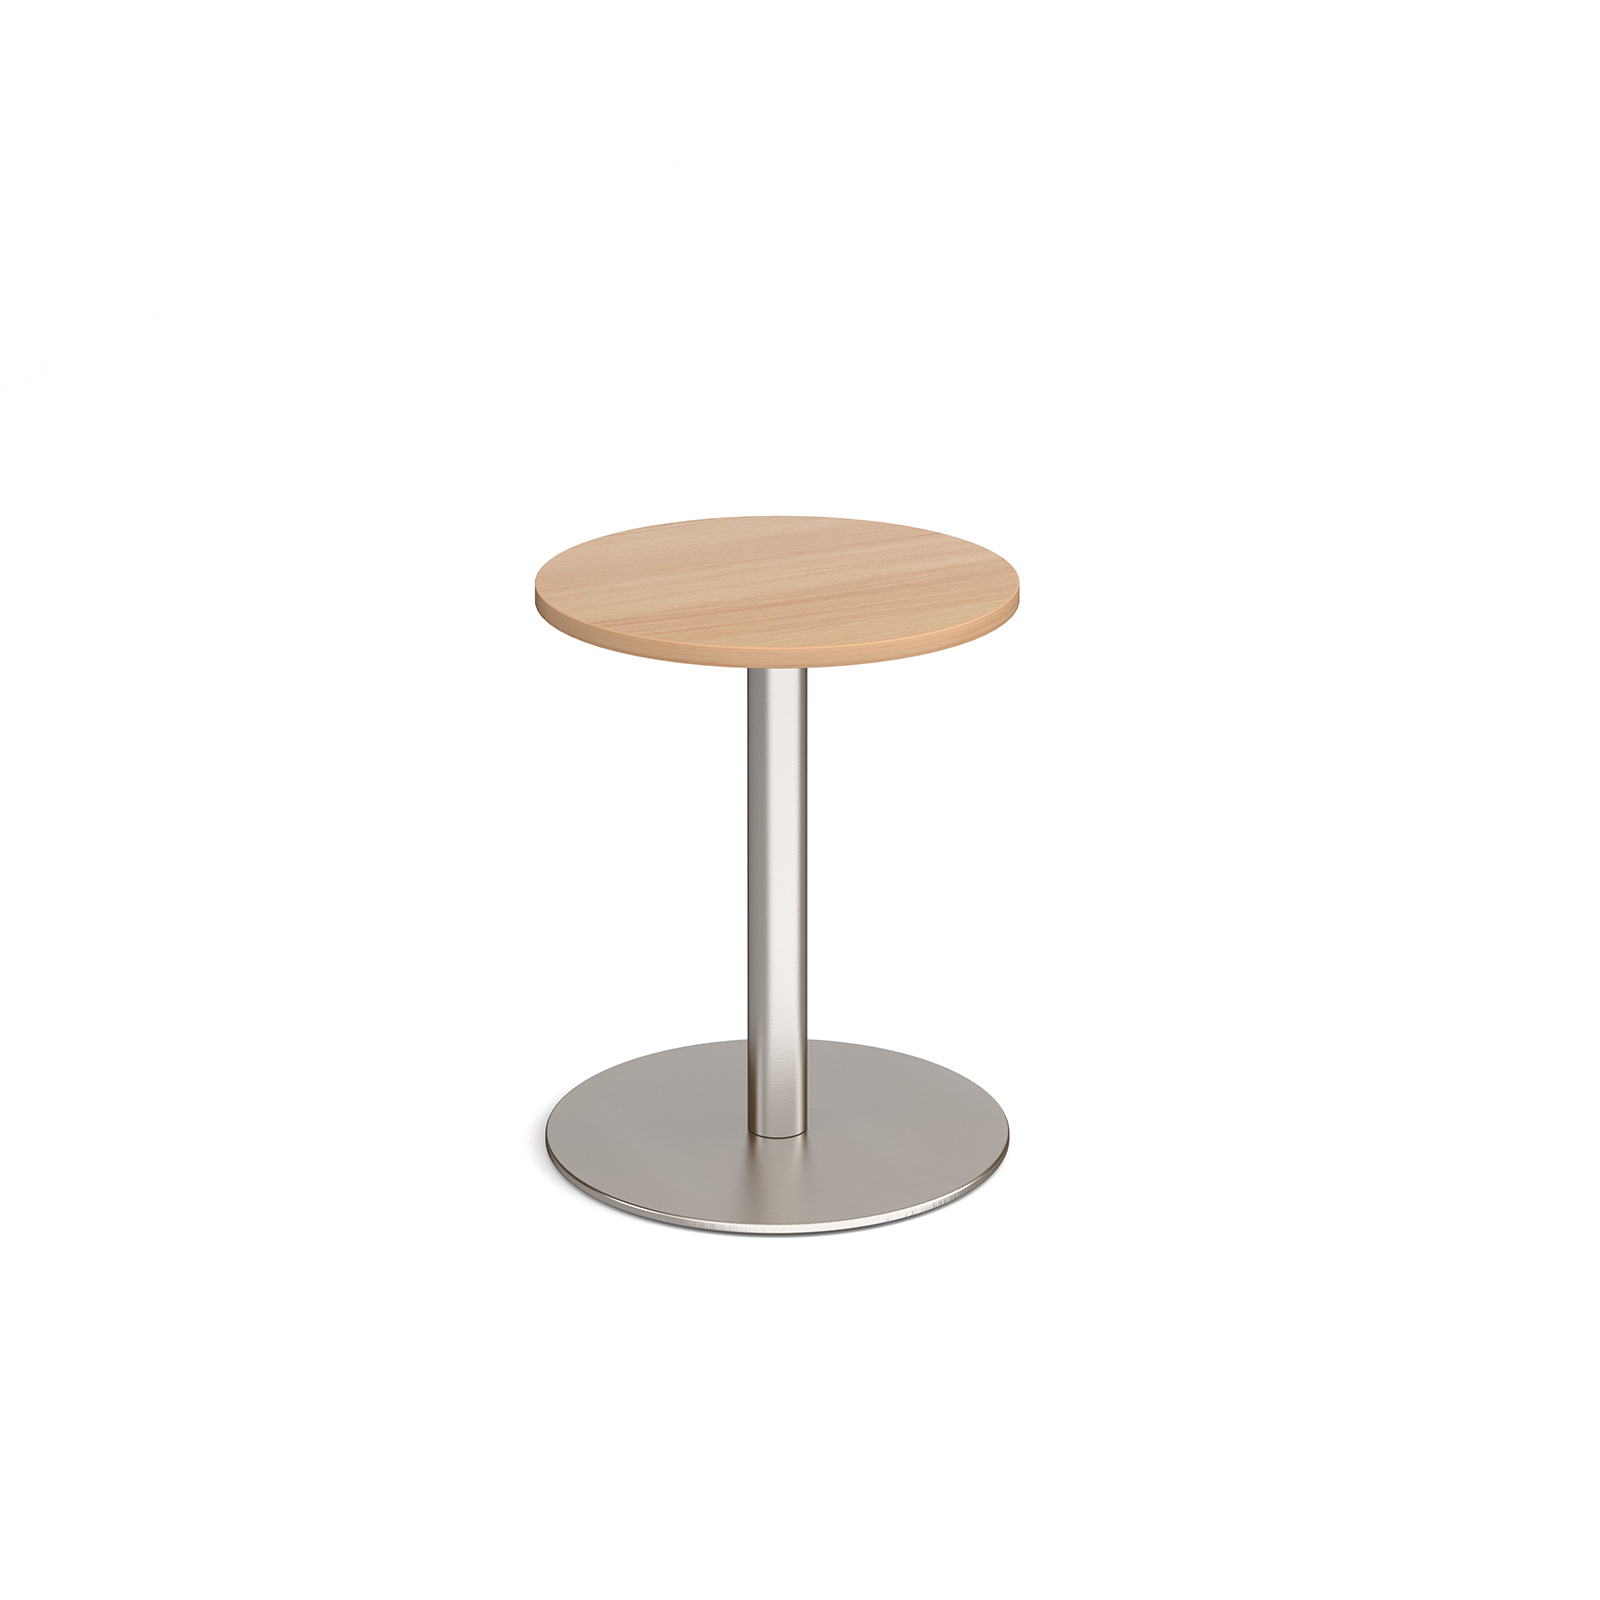 Canteen / Dining Monza circular dining table with flat round base